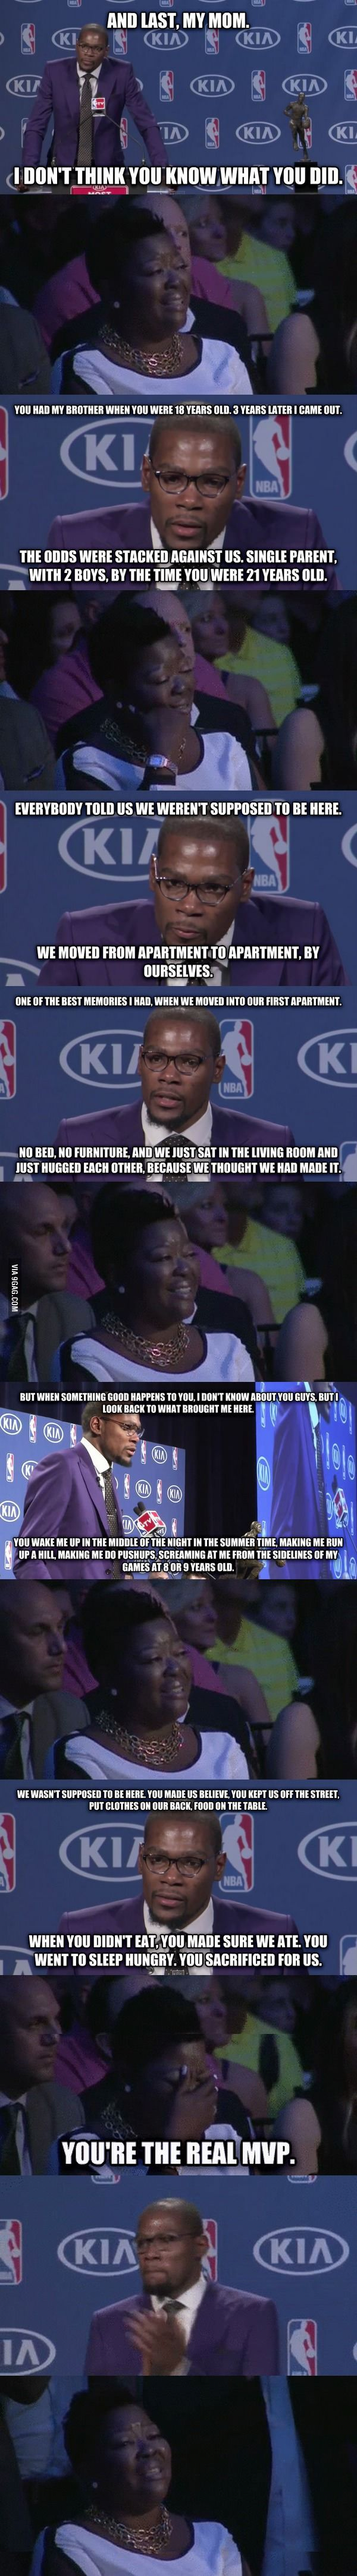 Kevin Durant talks about his mom during MVP speech. (I've been waiting for this meme!)